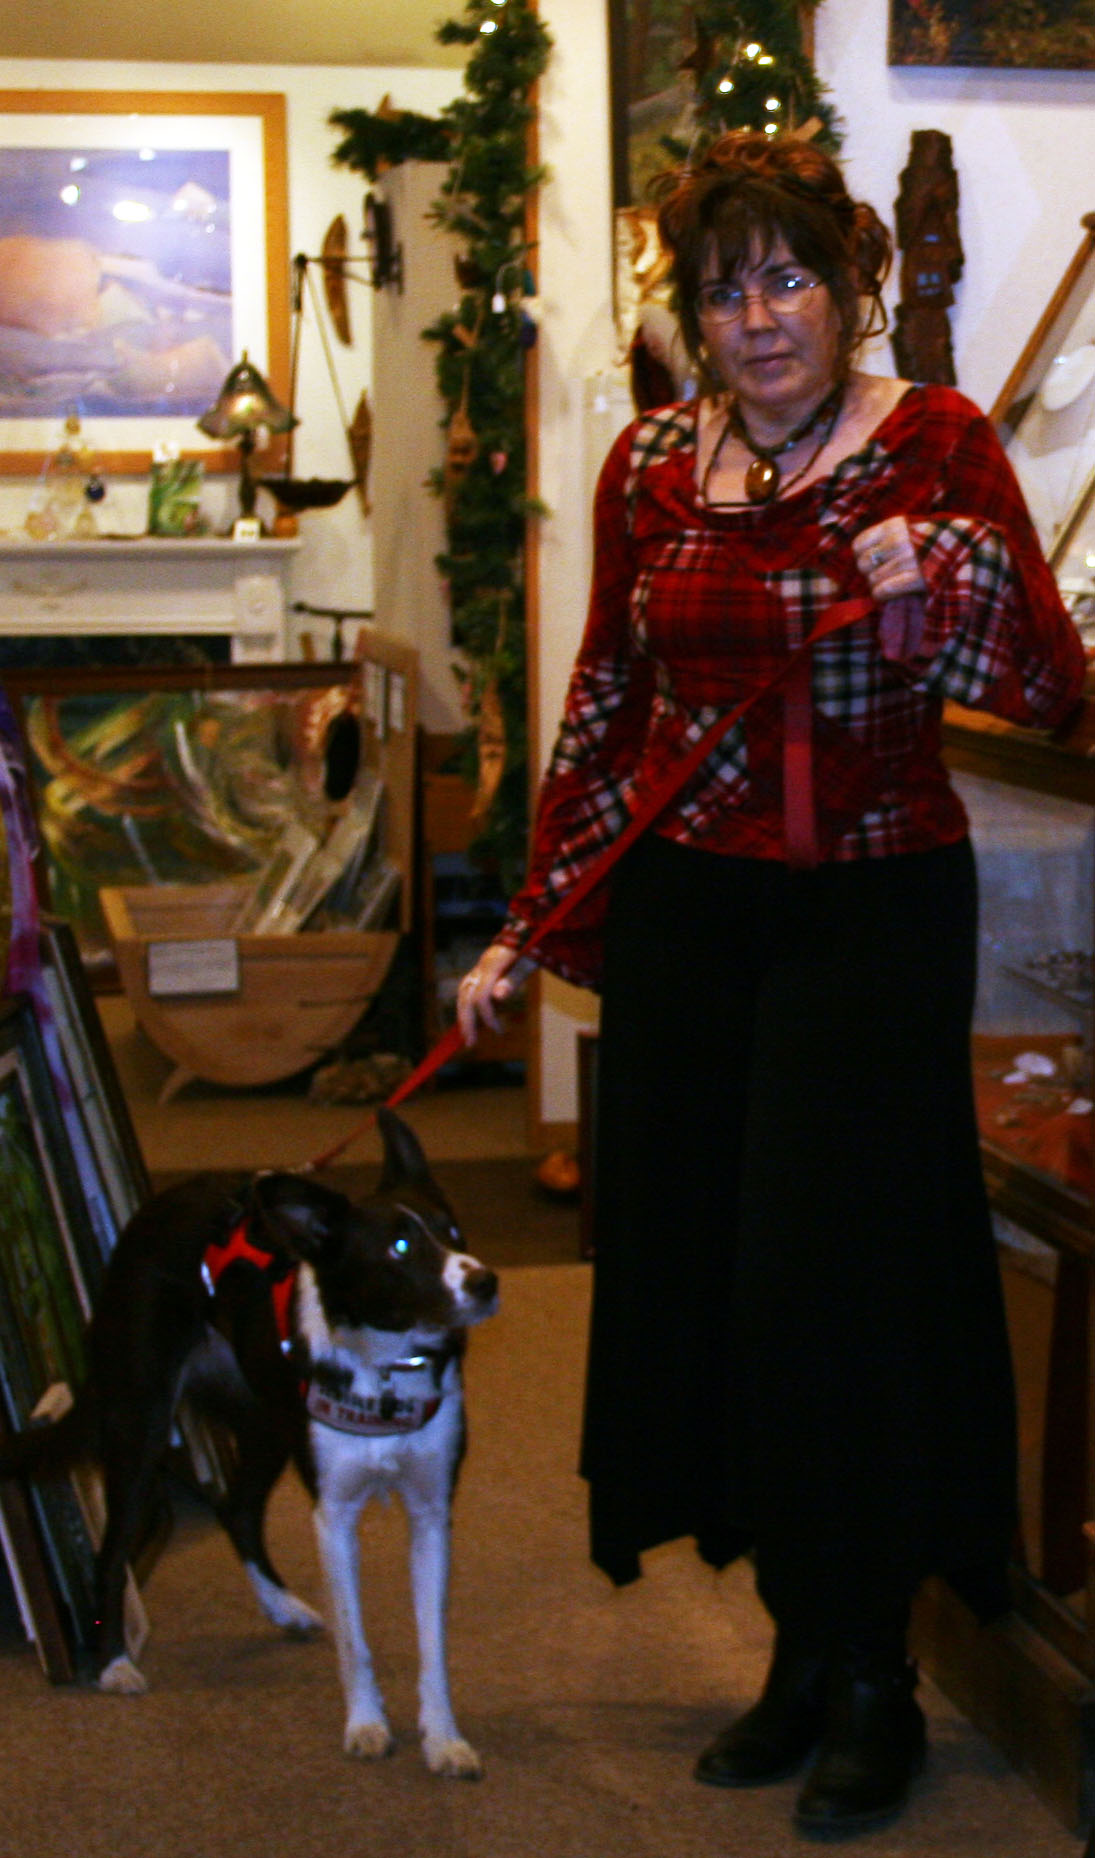 At Z Place Gallery in Ironwood Michigan with my faithful companion, Willow